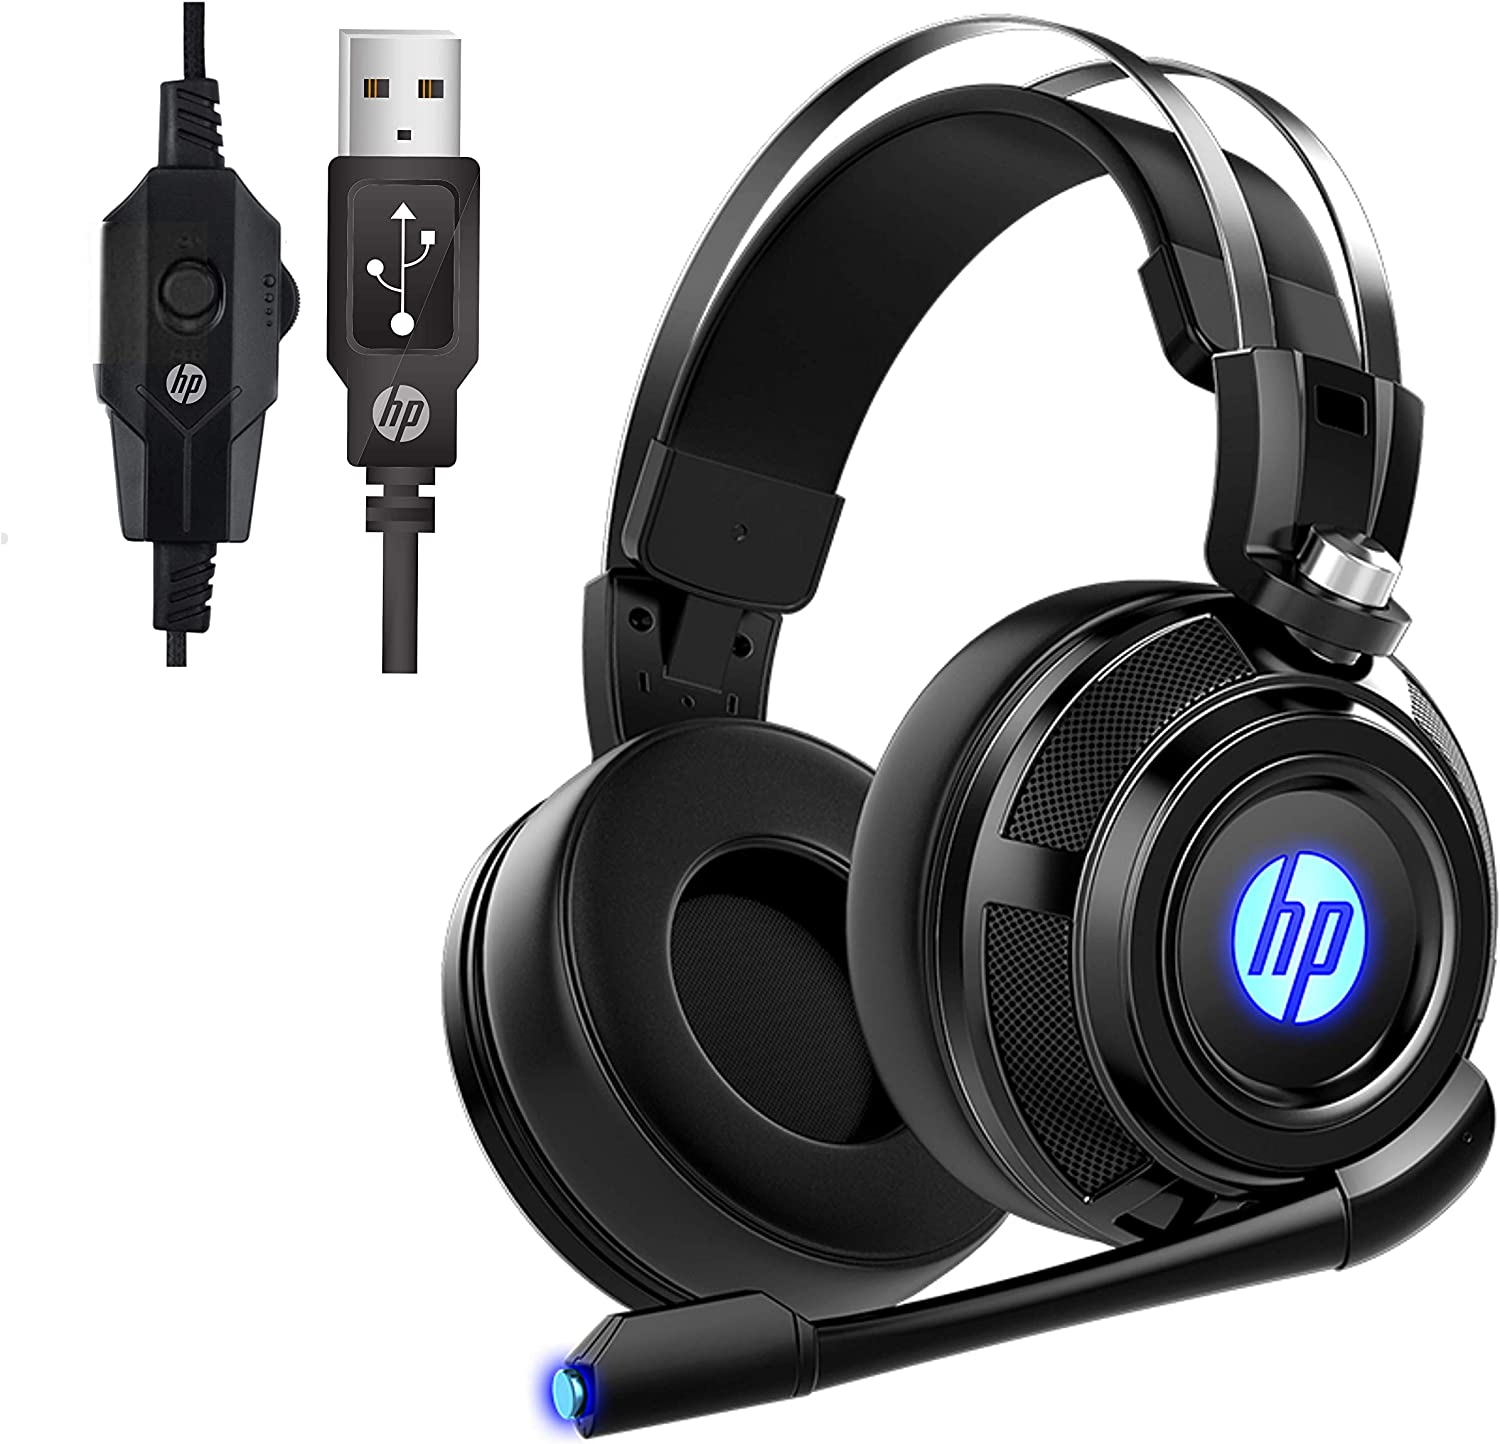 Amazon.com: HP Wired Stereo Gaming Headset with mic, 7.1 Surround Sound  Headphones for PC, Mac, Laptop, Over Ear Headphones and LED Light:  Electronics